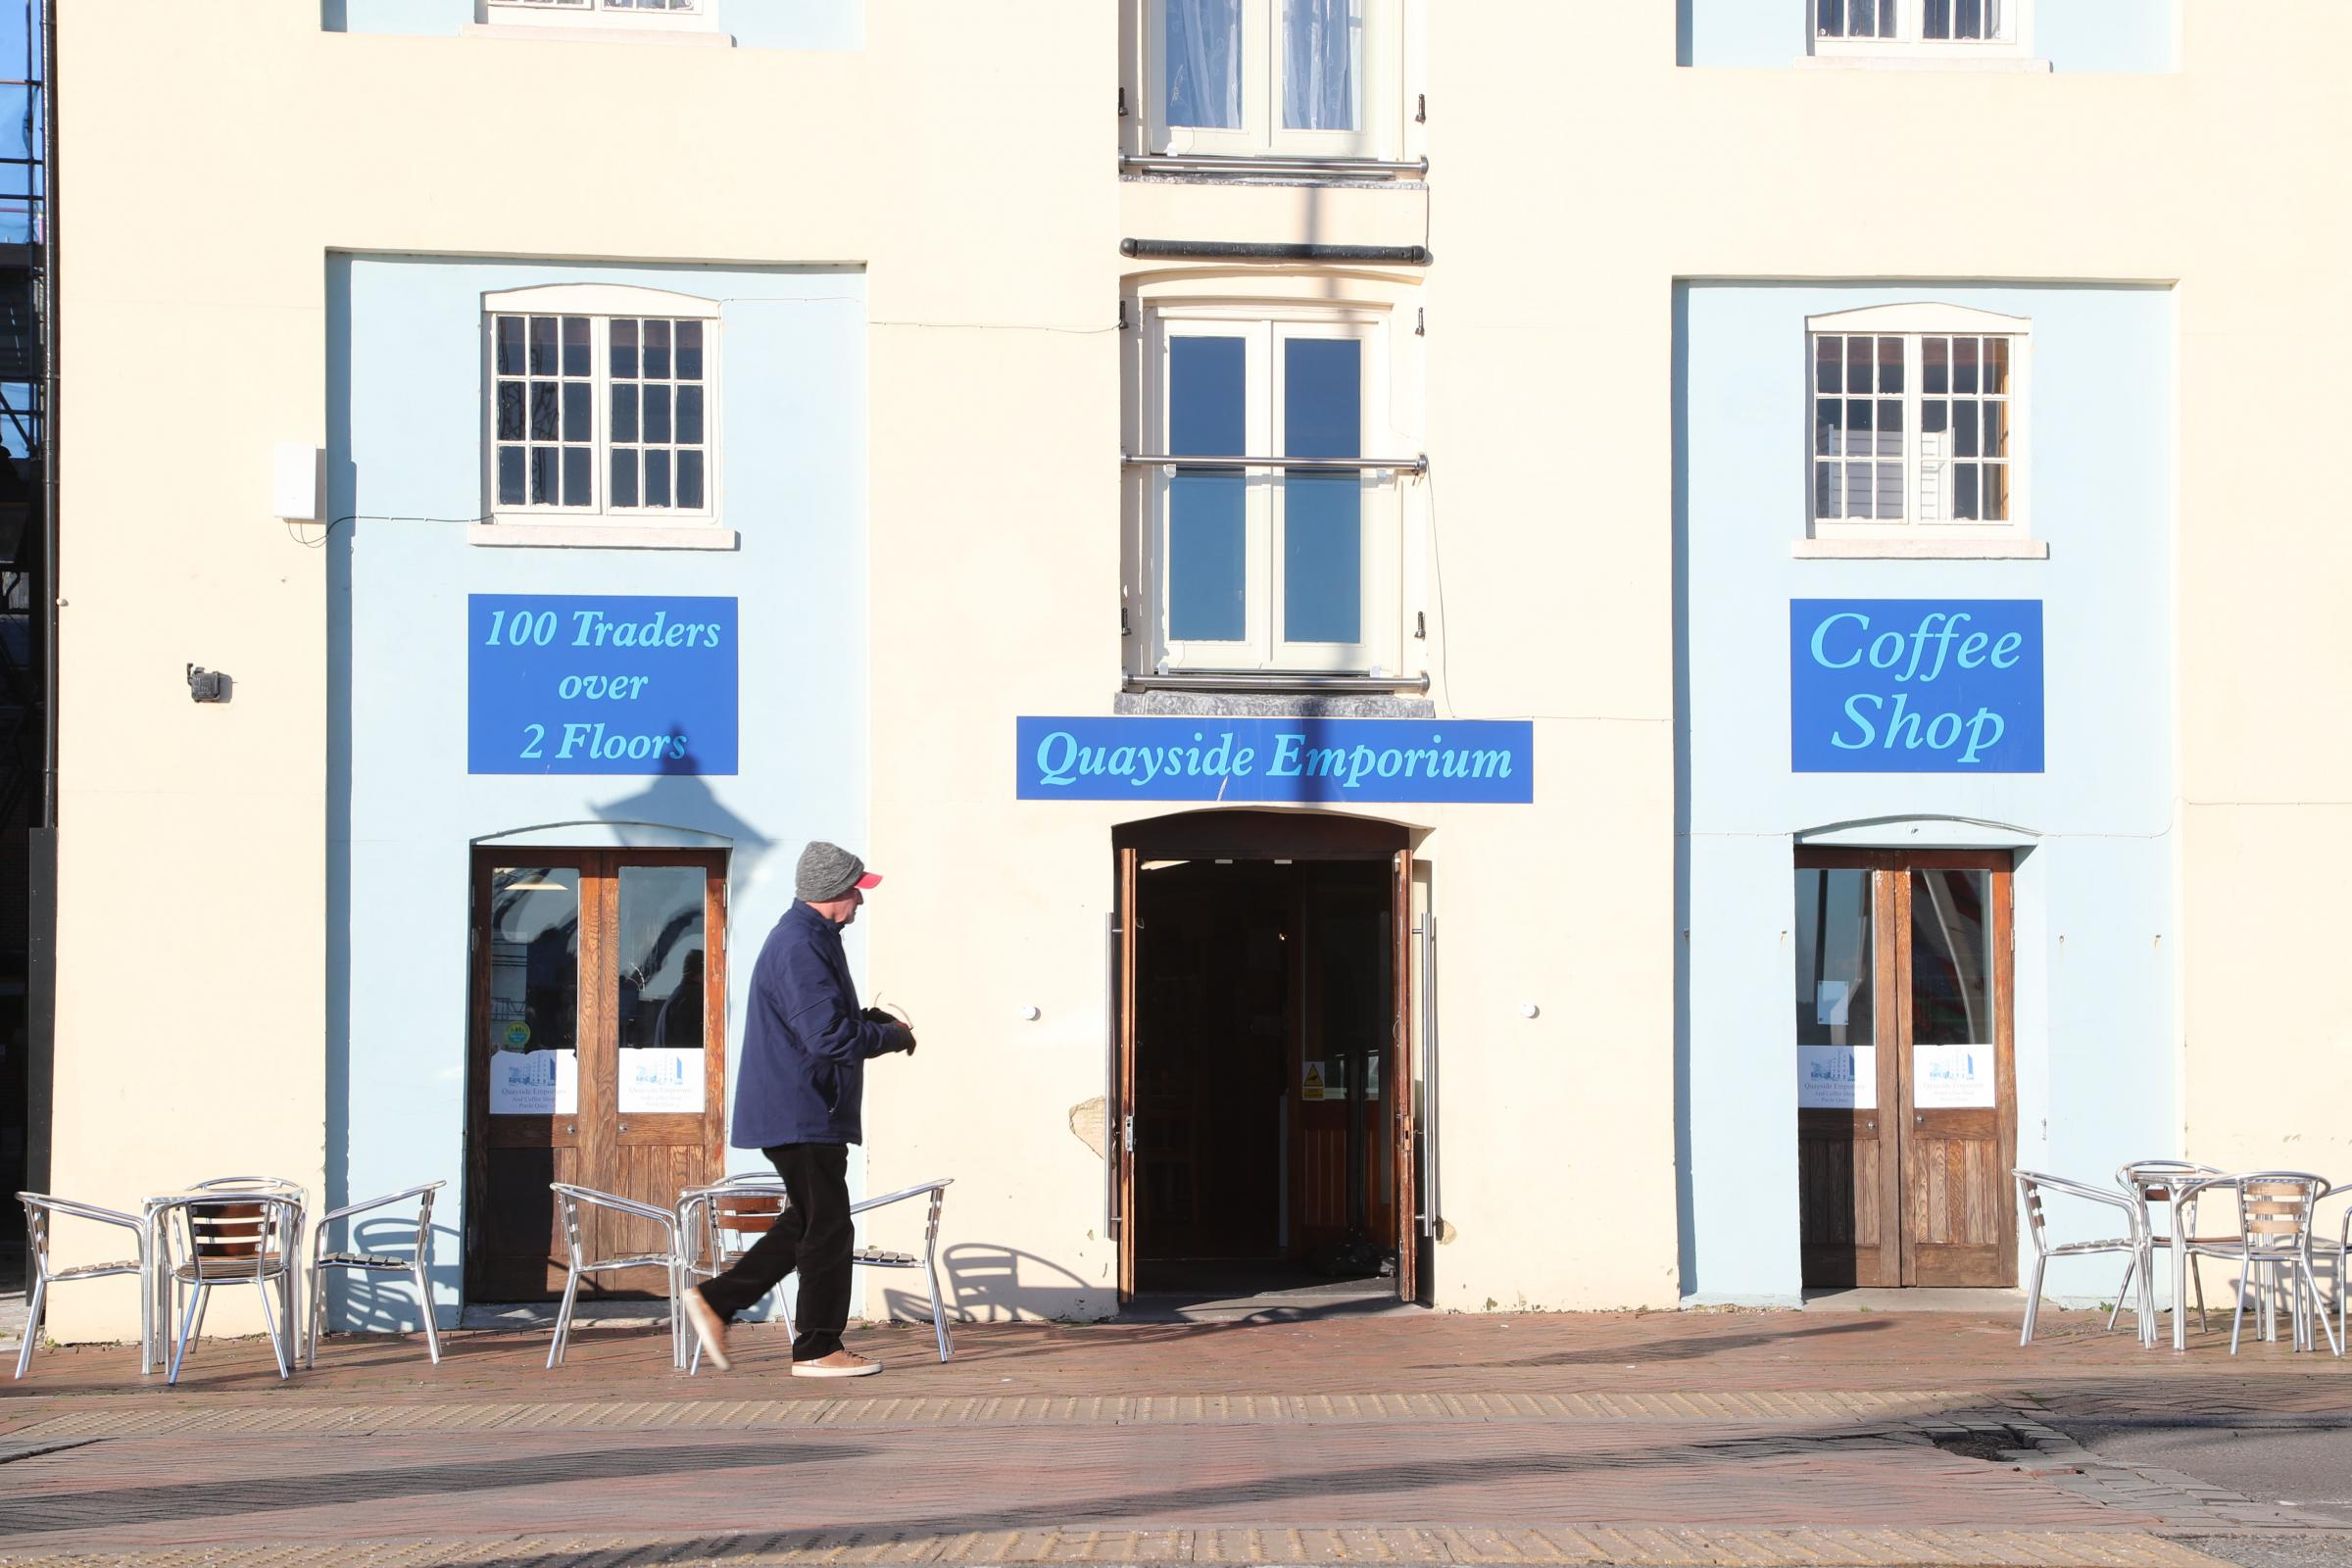 Quayside Emporium has closed on Poole Quay due to 'poor health of the director'